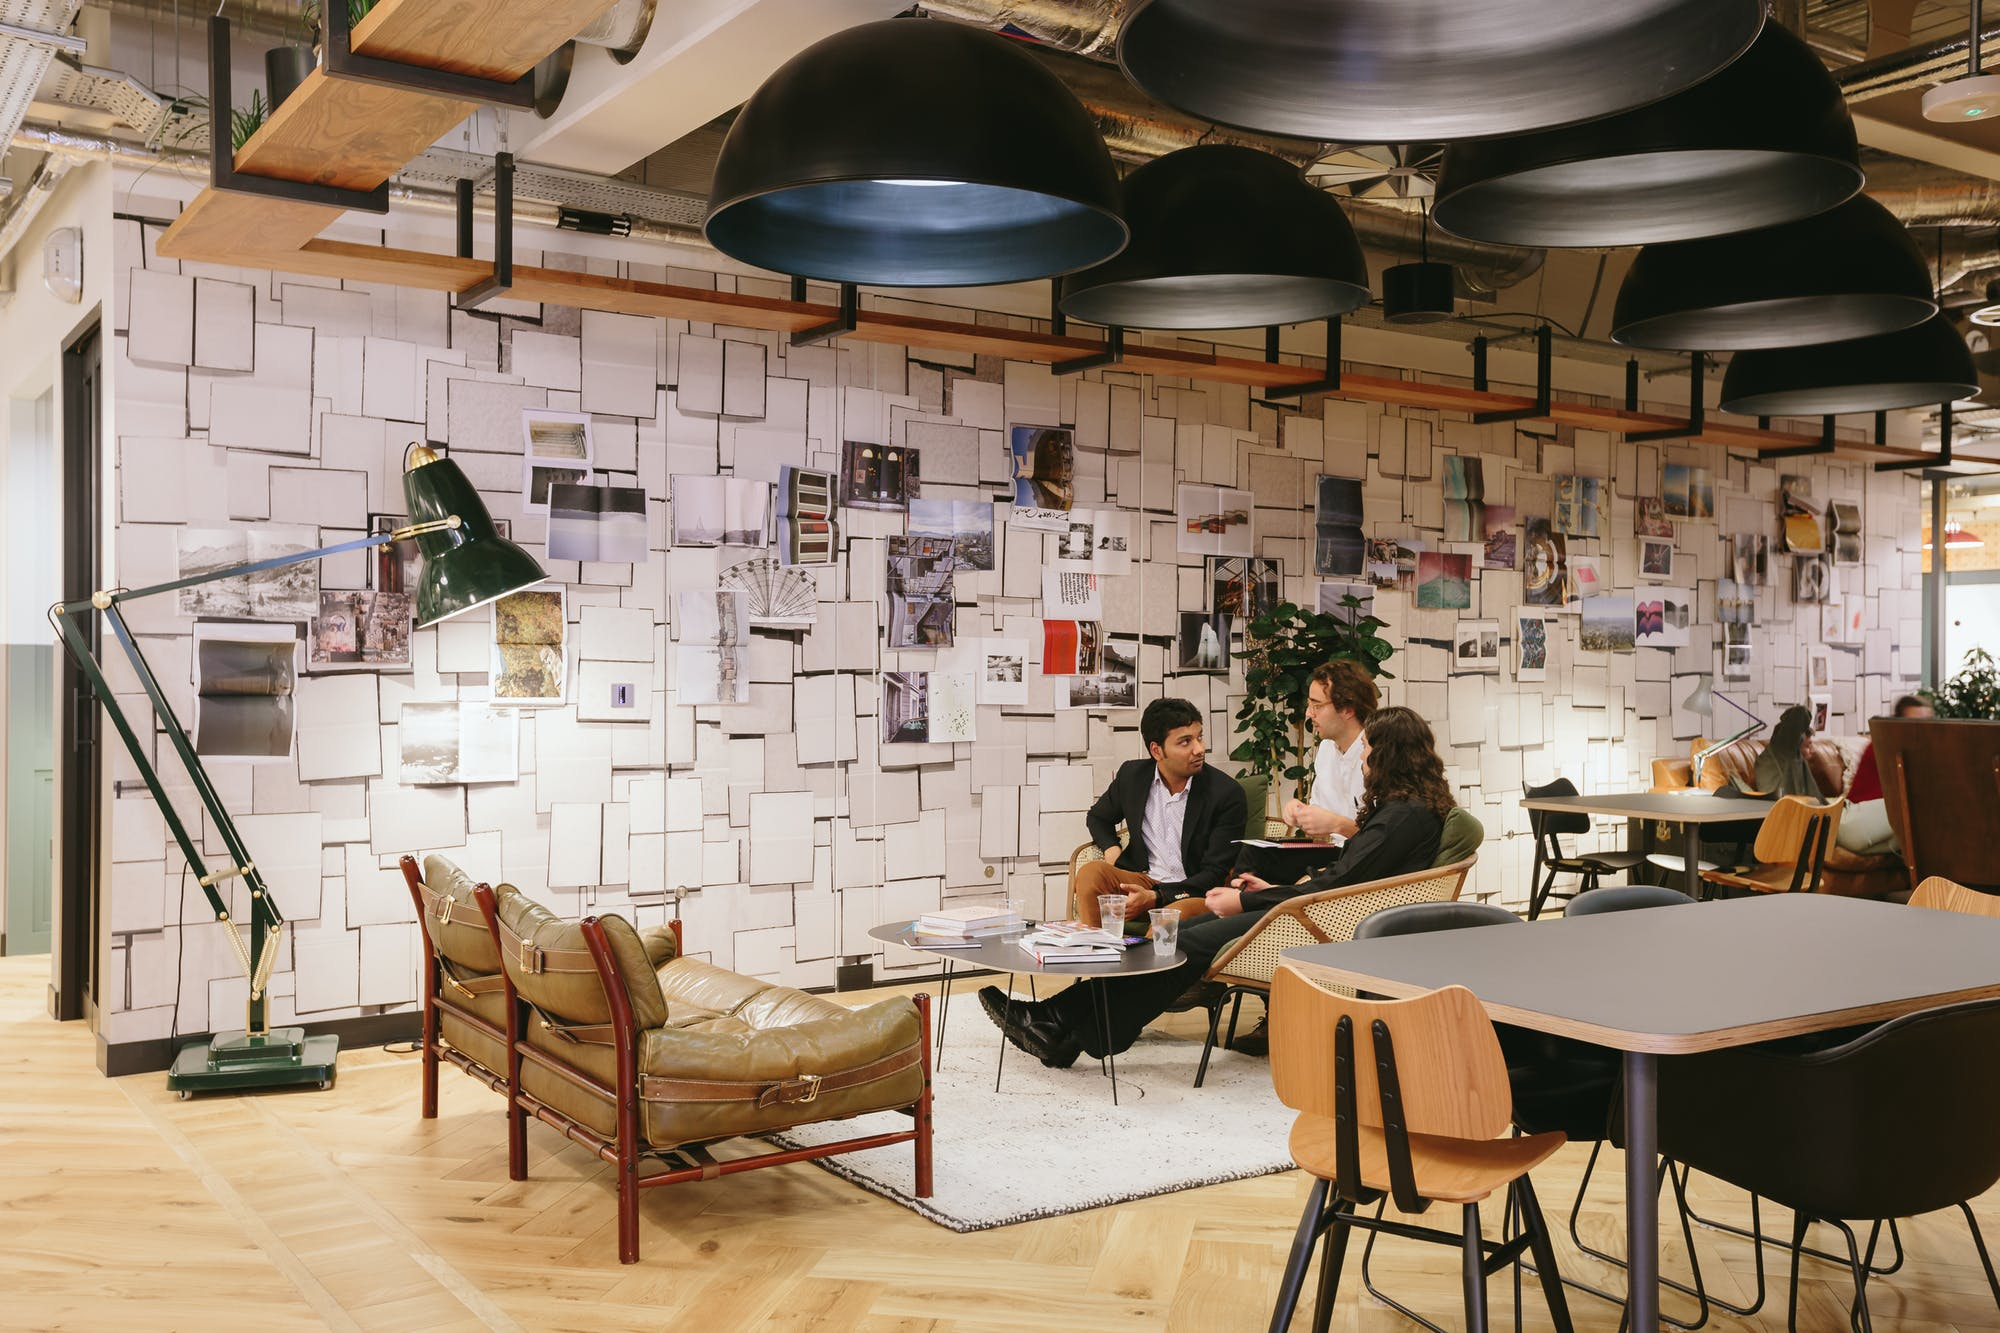 WeWork Paddington, London